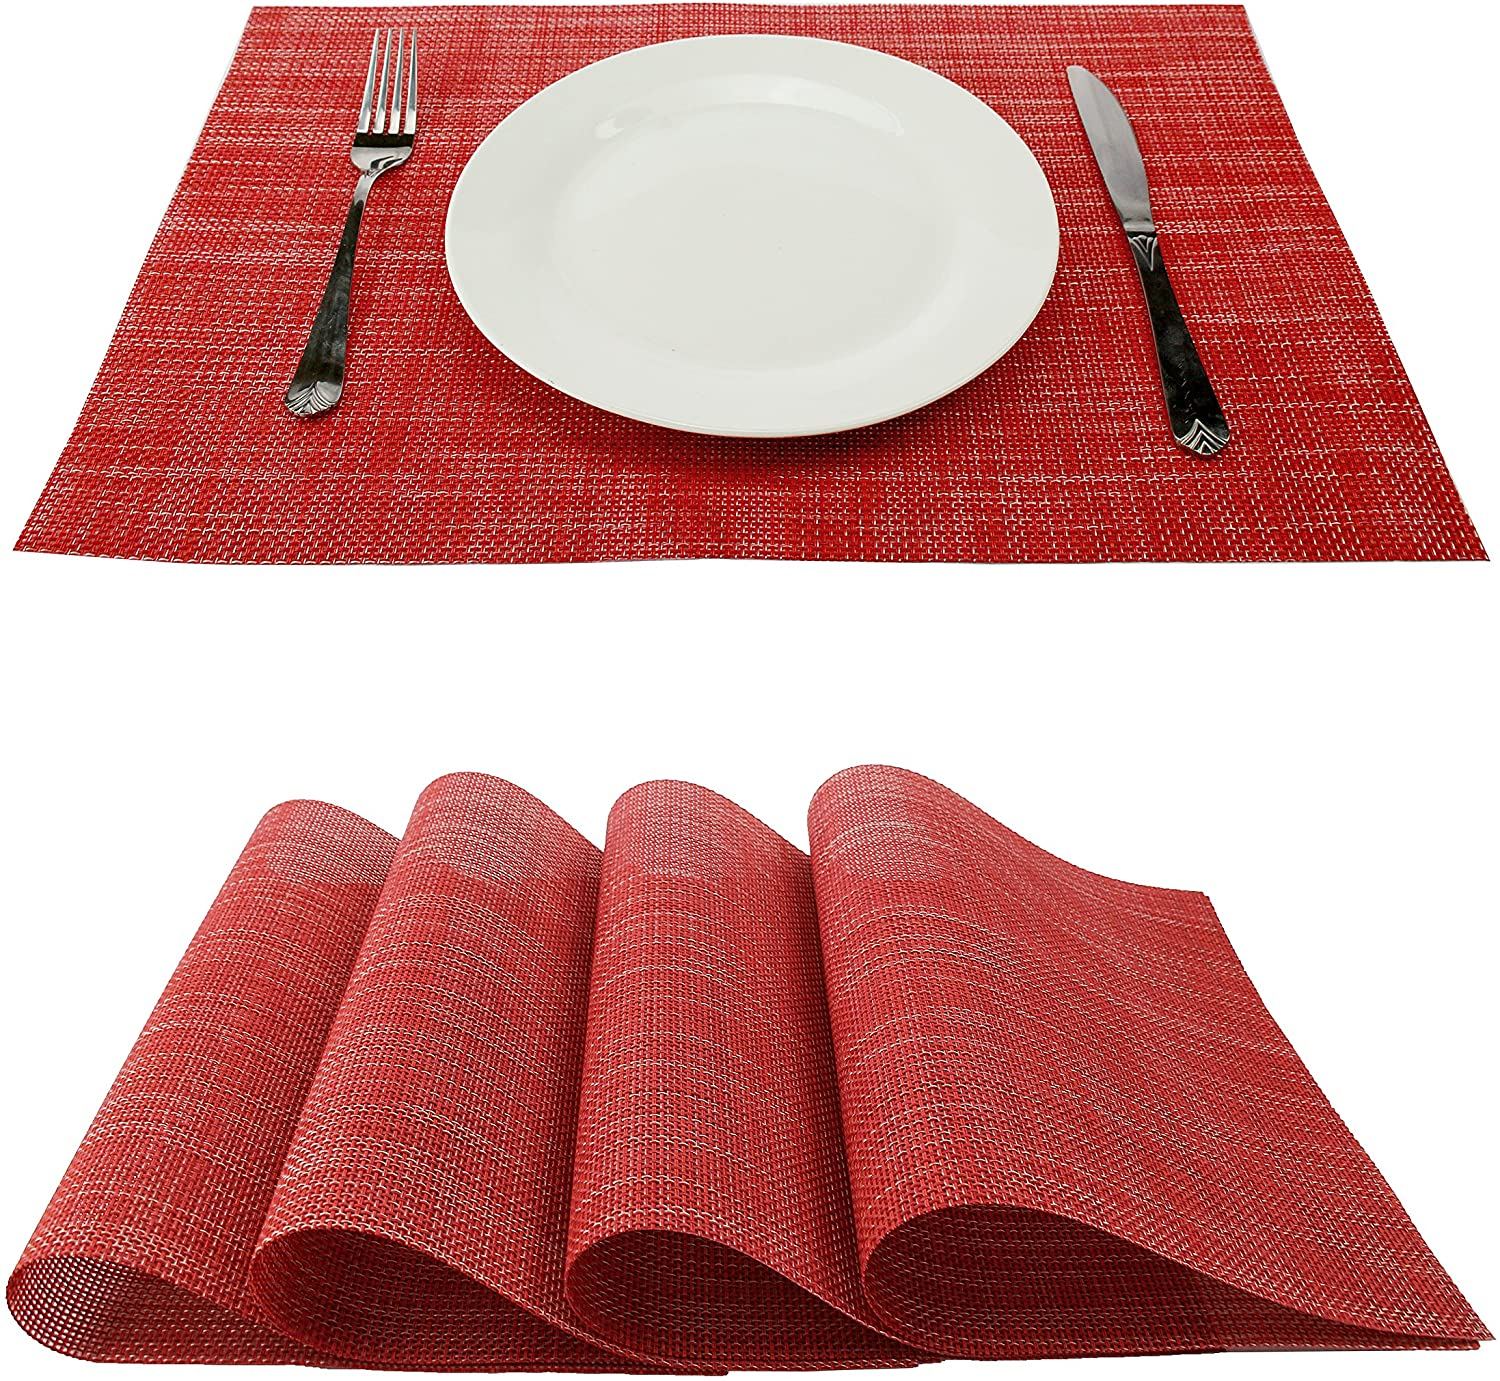 GEFEII Red Placemats Dining Table Table Mats Non-Slip Heat-Resistant PVC Woven Vinyl Washable Kitchen Placemats Set of 4 Stain Resistant Placemats (Red, 4)